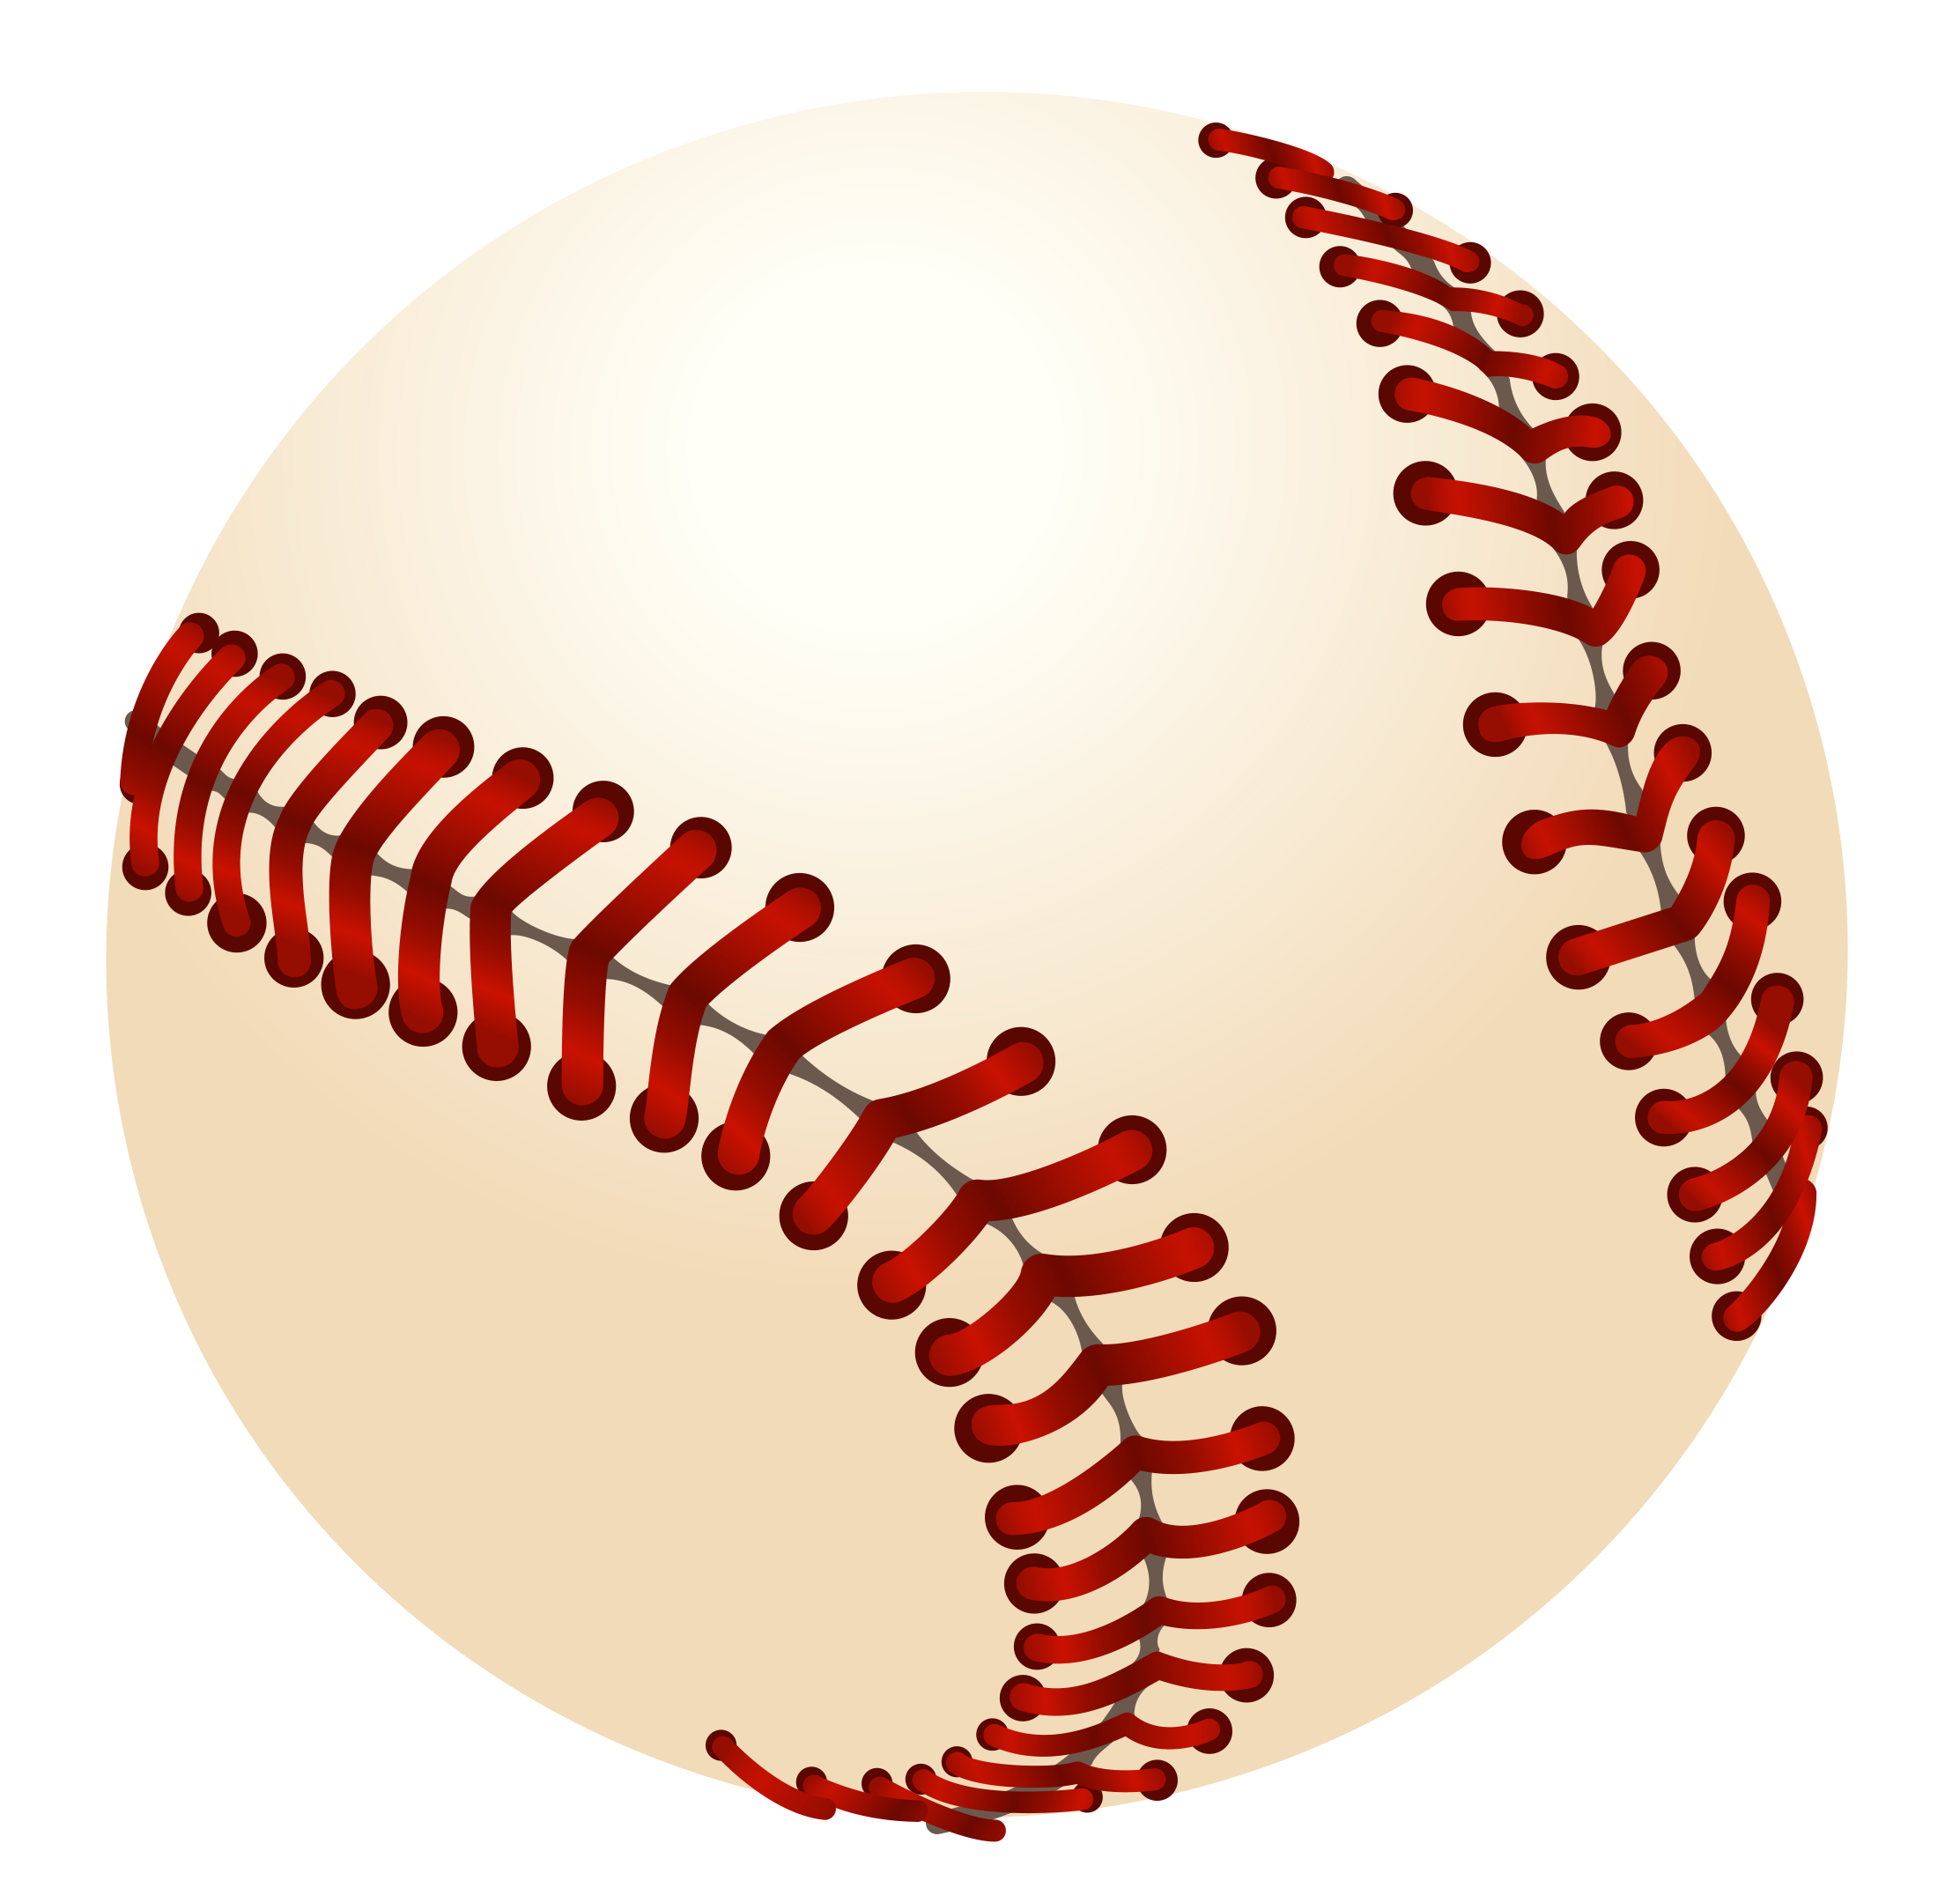 Baseball clipart high resolution #12